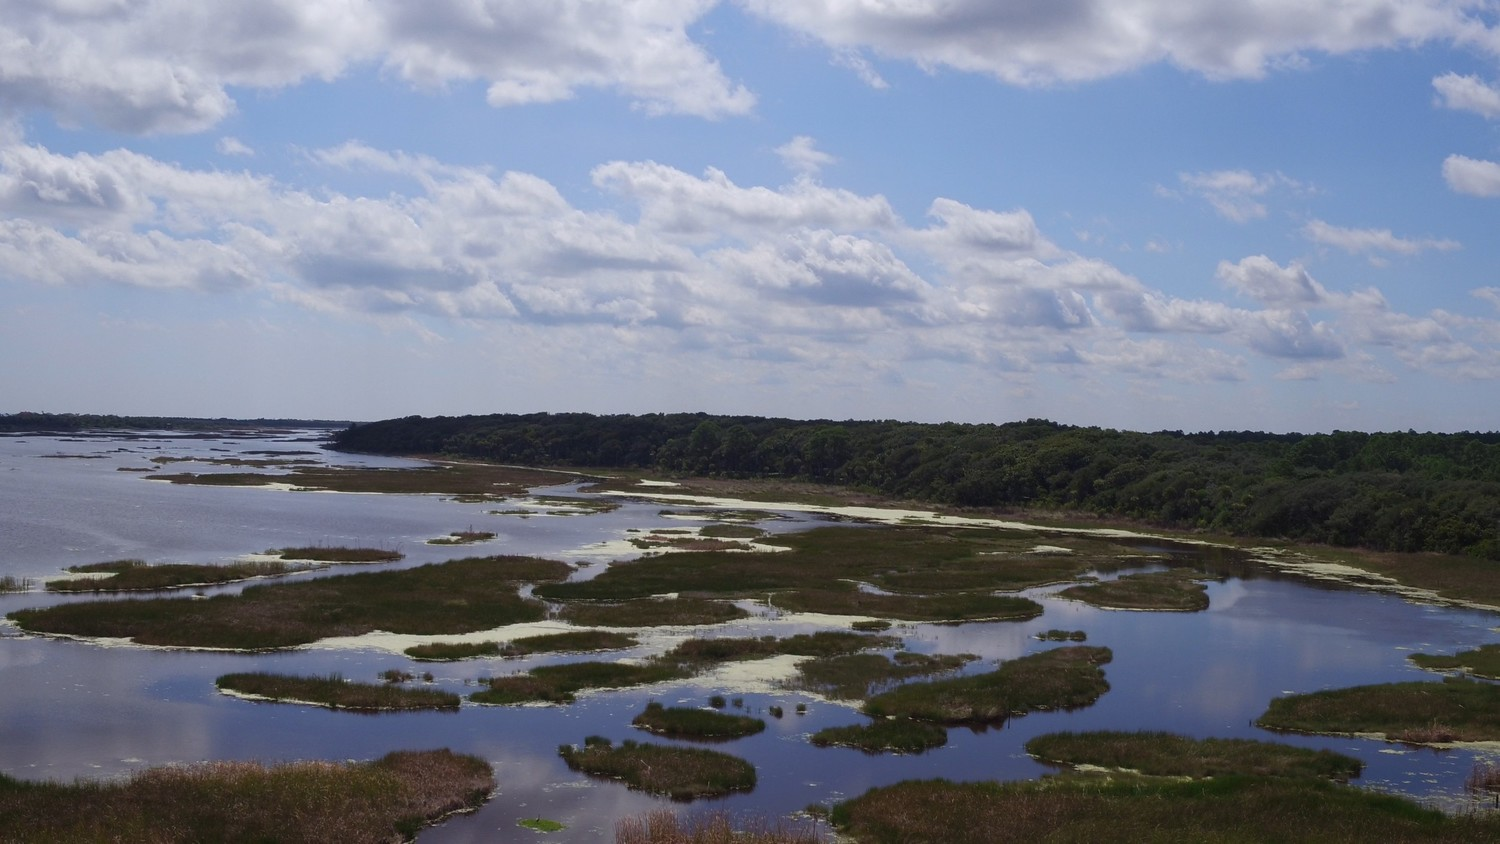 The Outpost property is located at the end of Neck Road and adjacent to the Guana Tolomato Matanzas National Estuarine Research Reserve.